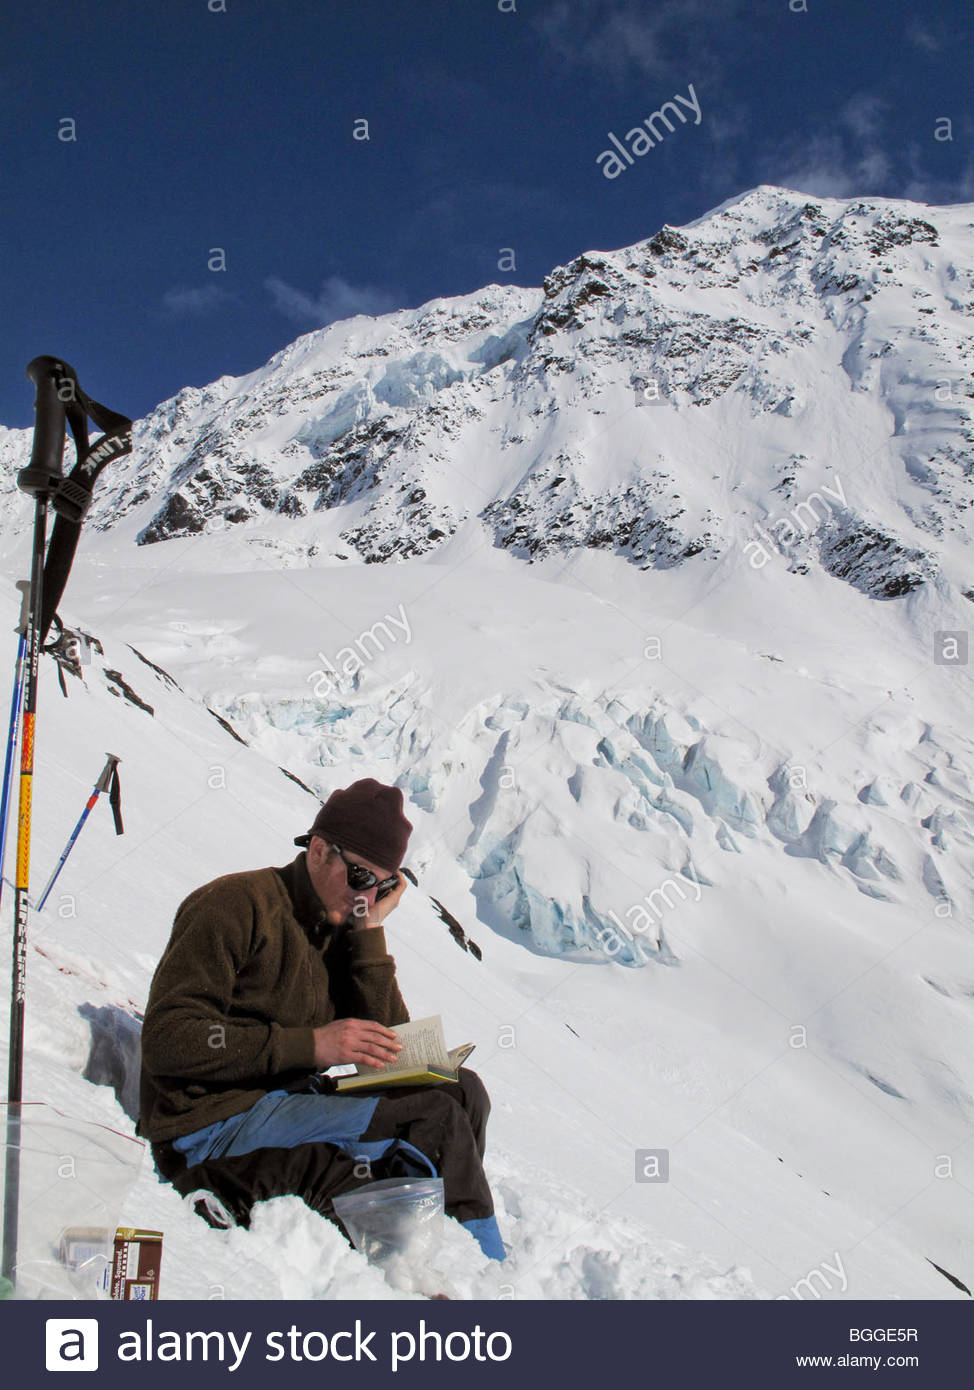 A backcountry skier pauses for a bit of reading, Chugach Mountains, Alaska. - Stock Image